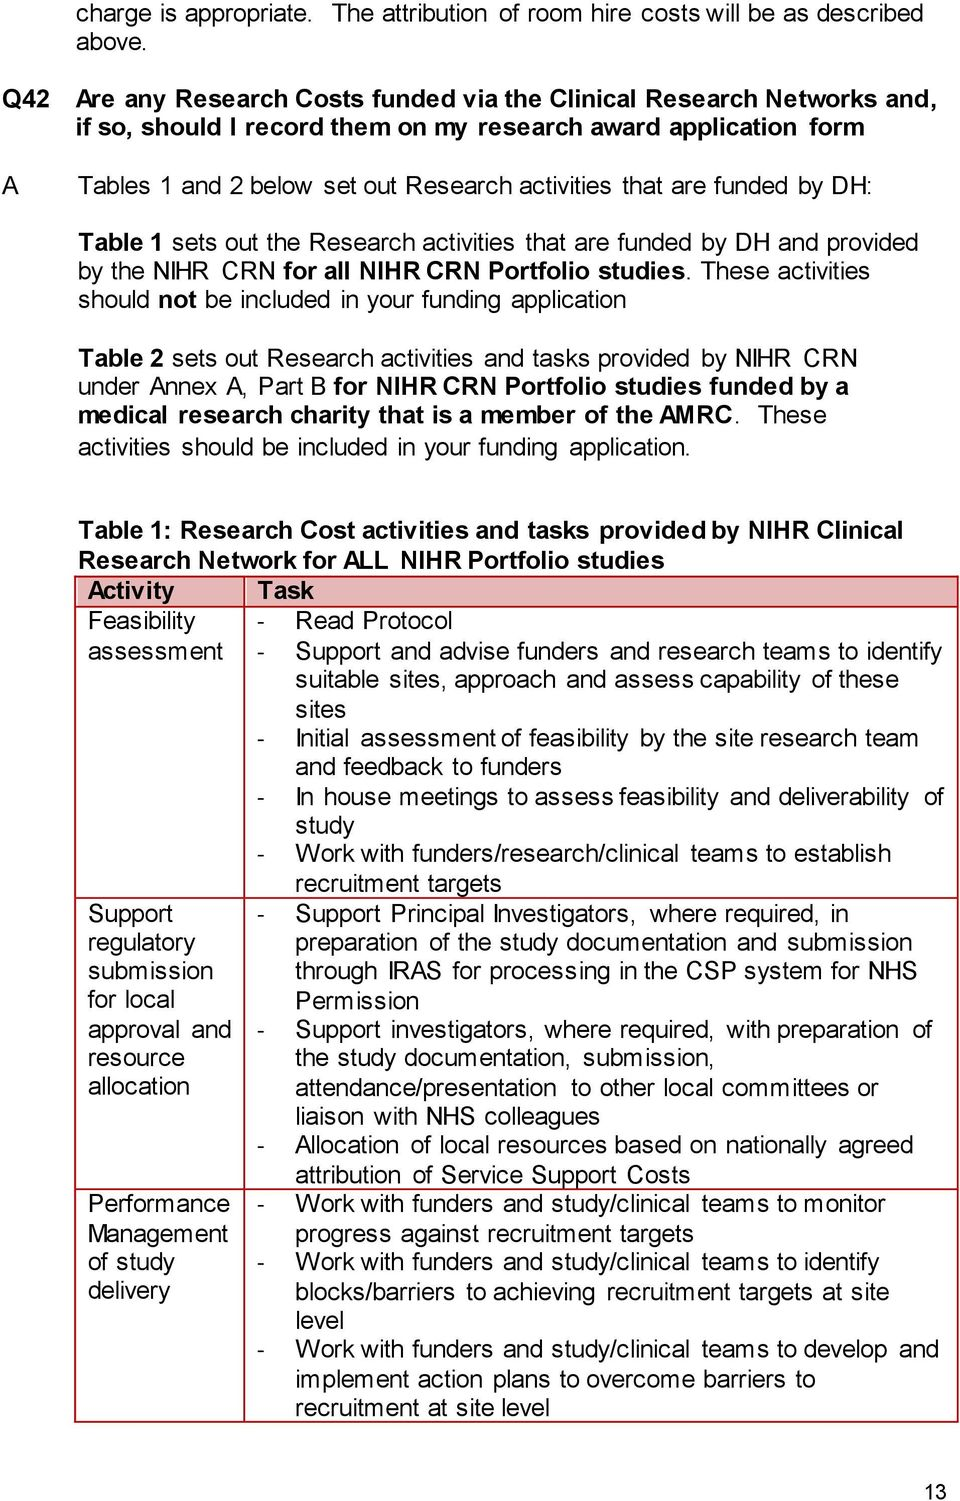 Table 1 sets out the Research activities that are funded by DH and provided by the NIHR CRN for all NIHR CRN Portfolio studies.